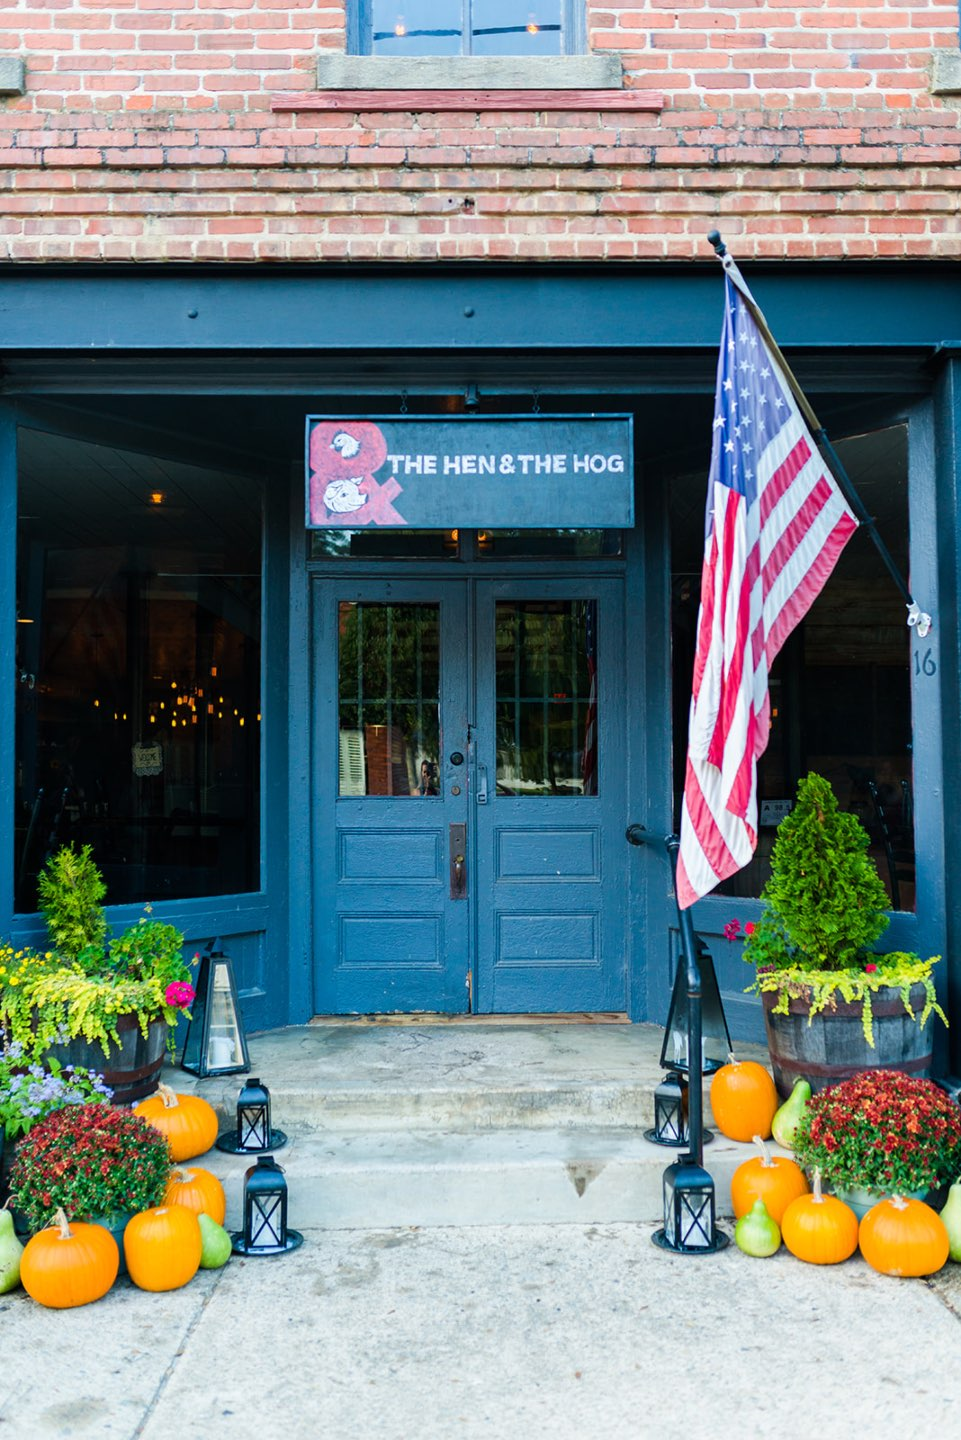 Top 5 Best Destination Restaurants in Eastern NC you Need to Try - I'm Fixin' To - @mbg0112 | Top 5 Best Destination Restaurants in Eastern NC you Need to Try by popular North Carolina blog, I'm Fixin' To: image of The Hen and the Hog entrance.